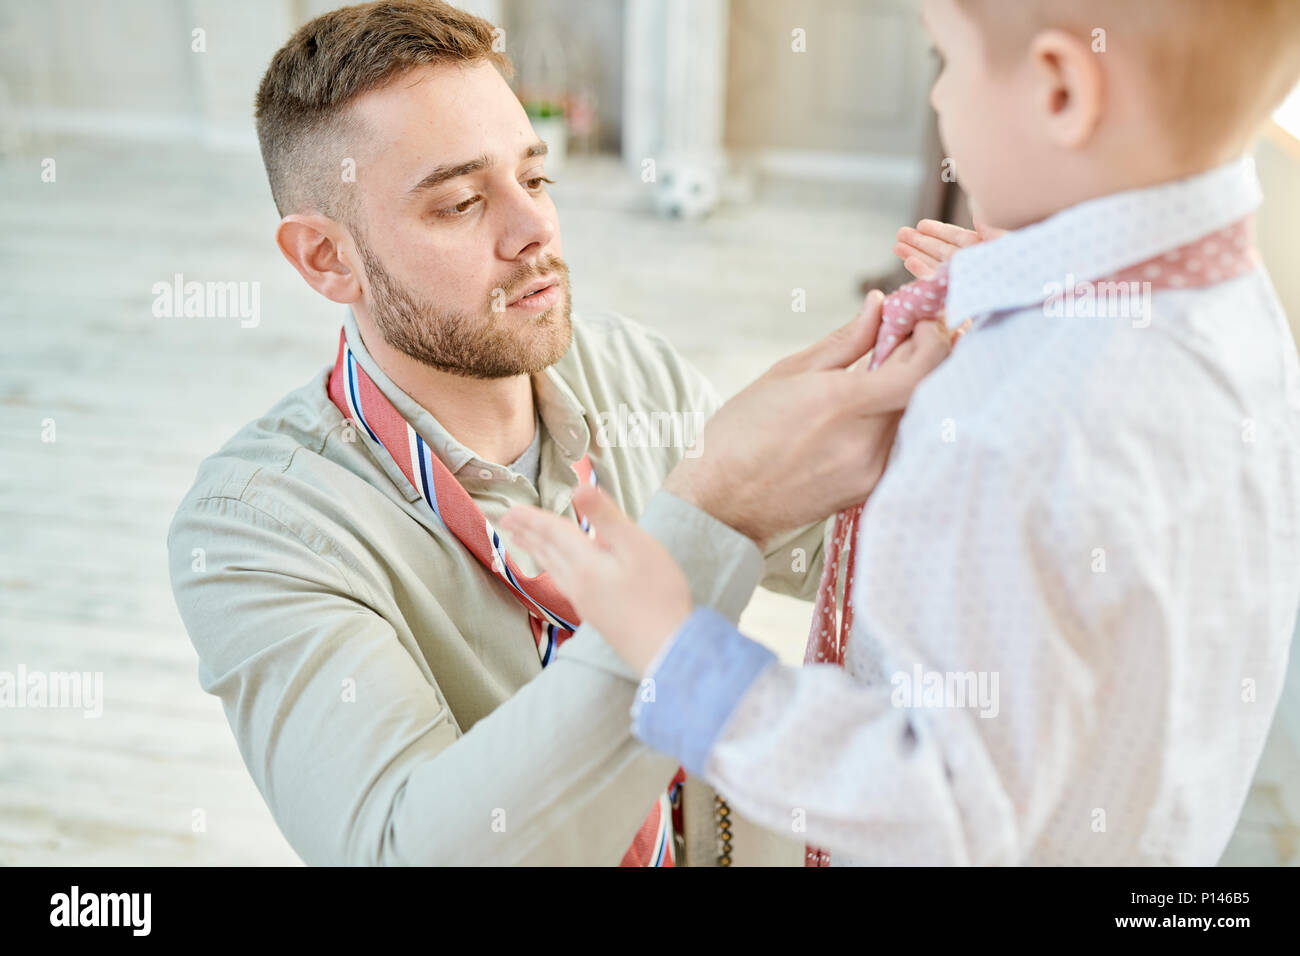 Loving Dad Knotting Tie with Little Son - Stock Image